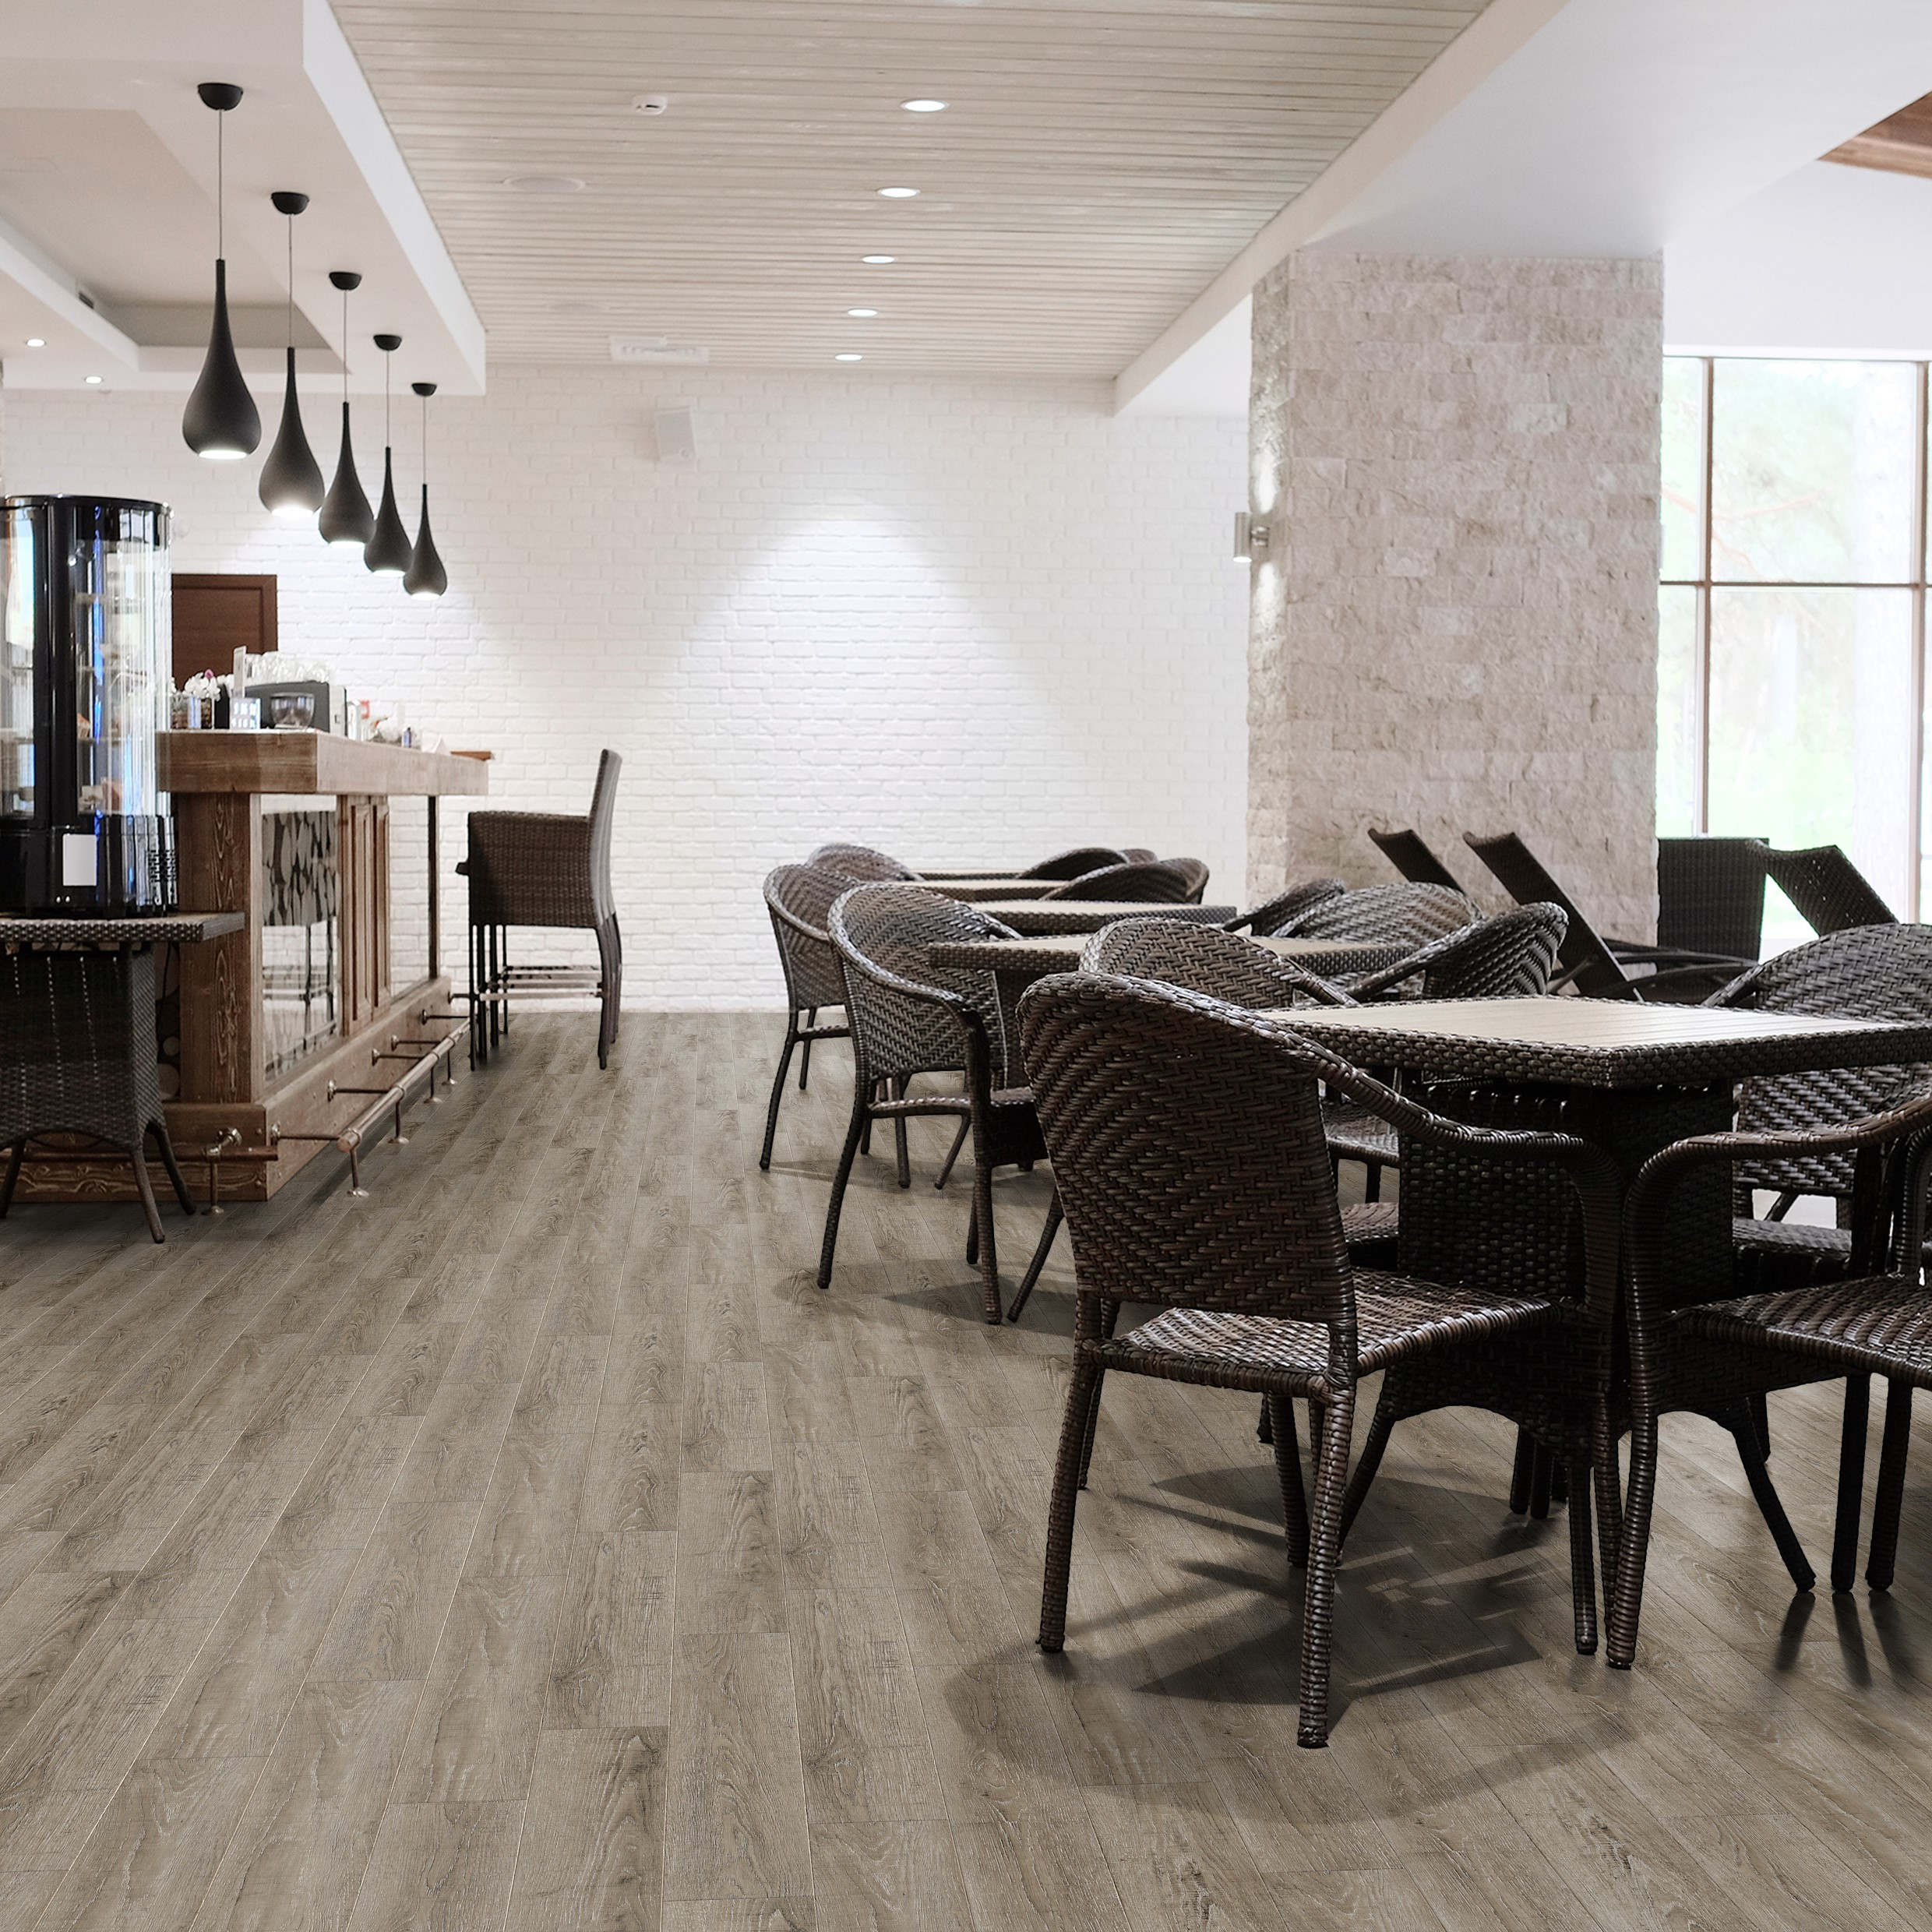 Luvanto Endure Pro LVT Reclaimed Oak